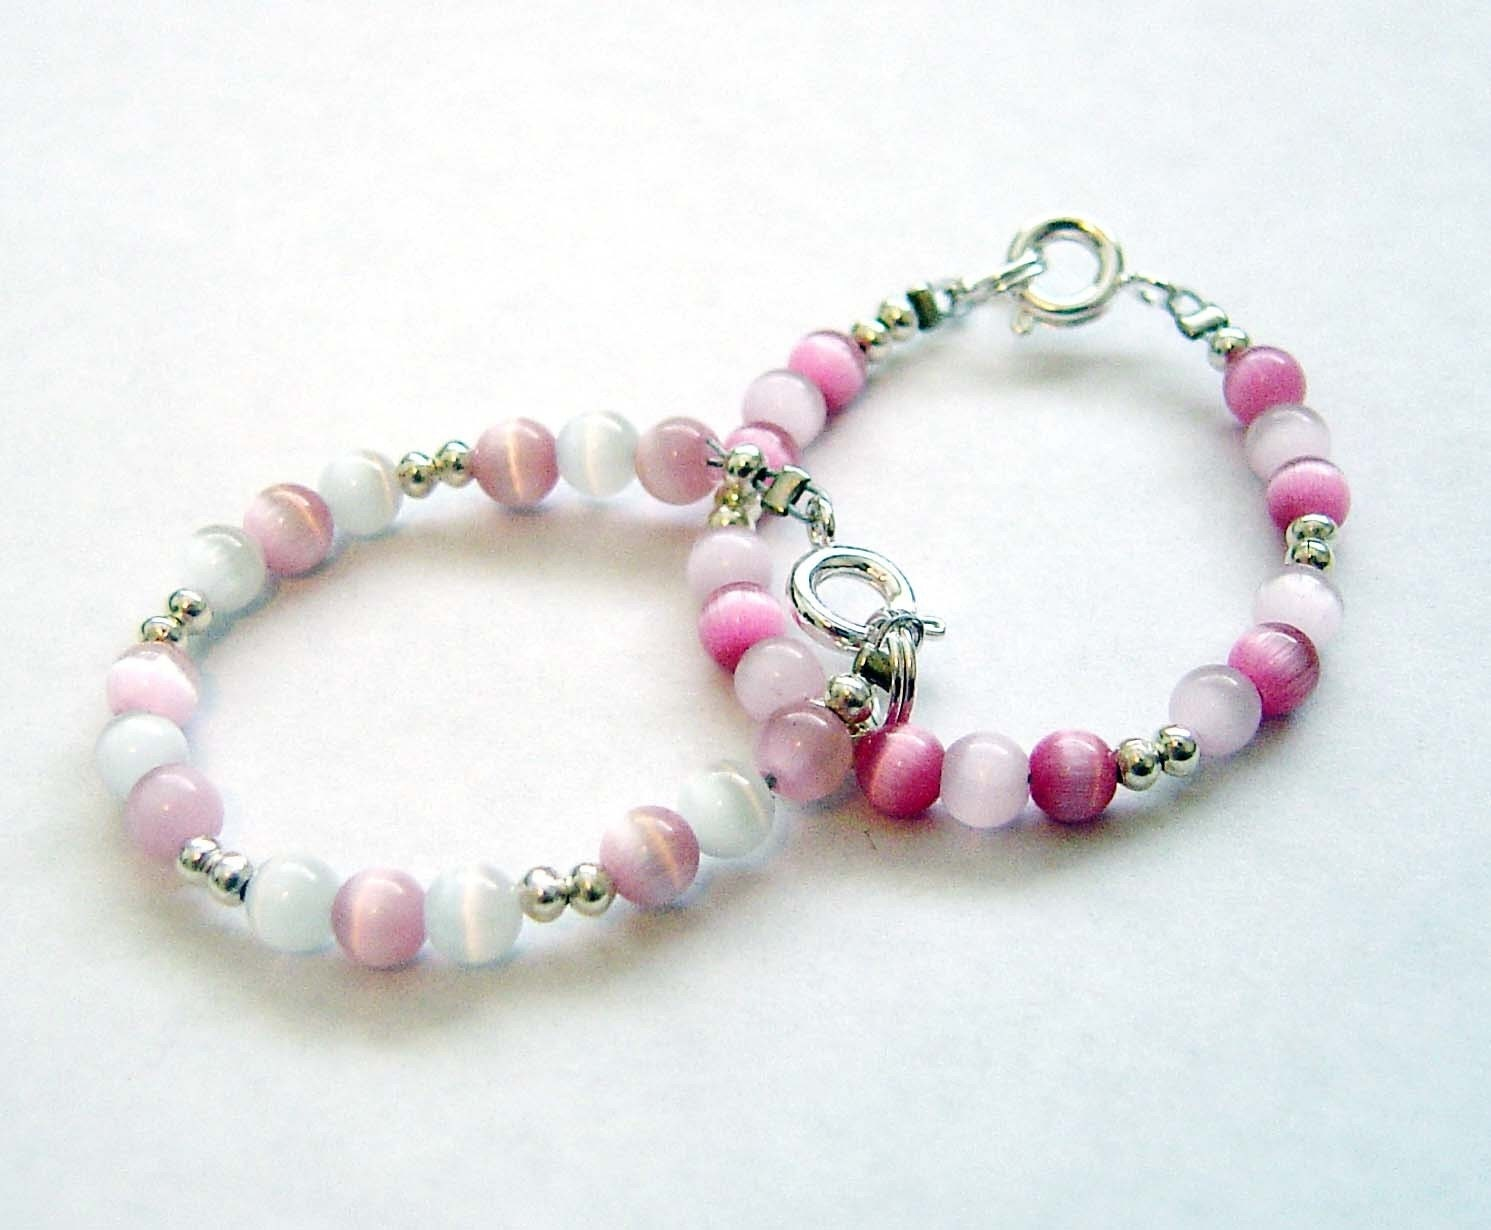 Baby Bracelets on Twins Baby Bracelets Set Of 2 All About Pink By Qt4baby On Etsy